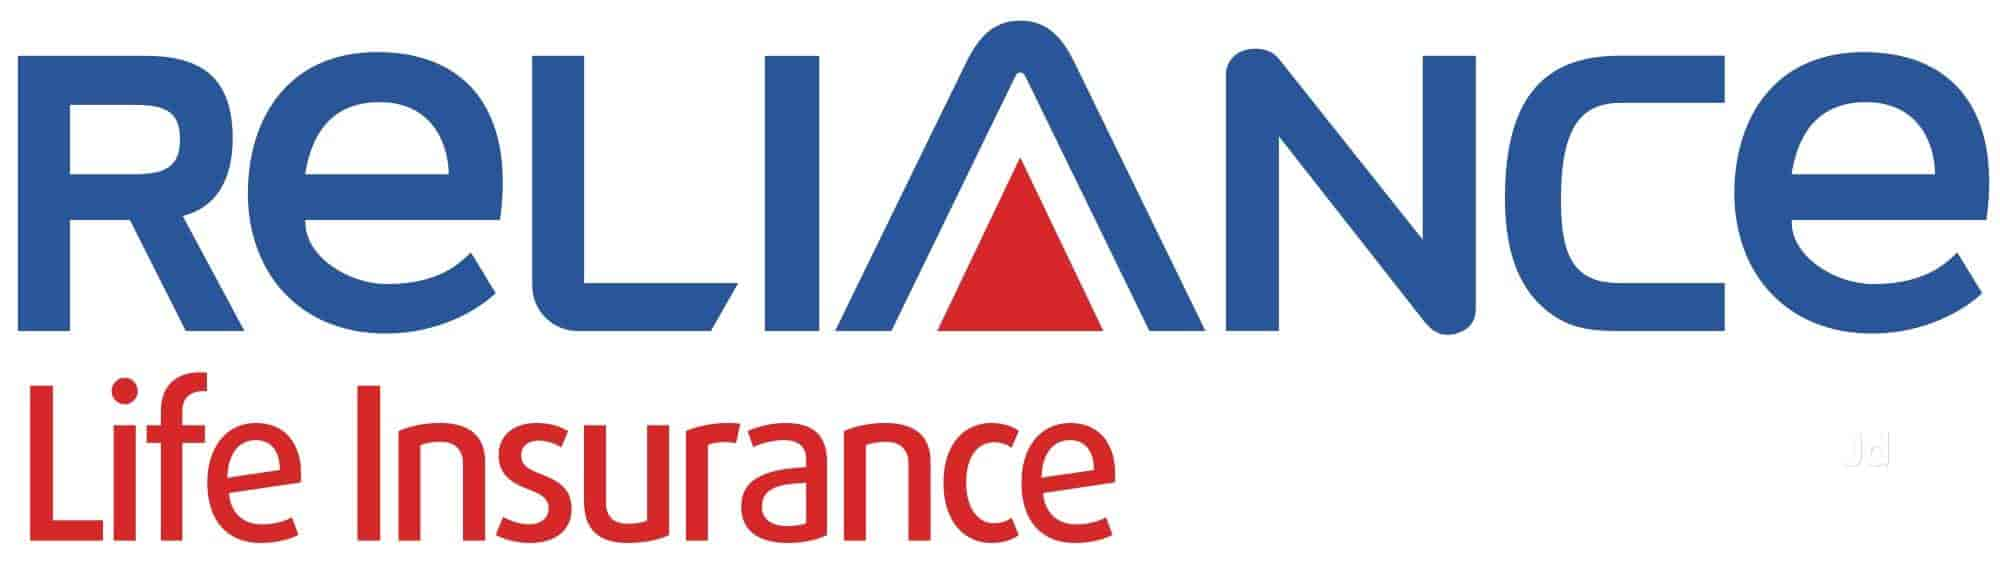 Image result for Reliance Life Insurance official logo